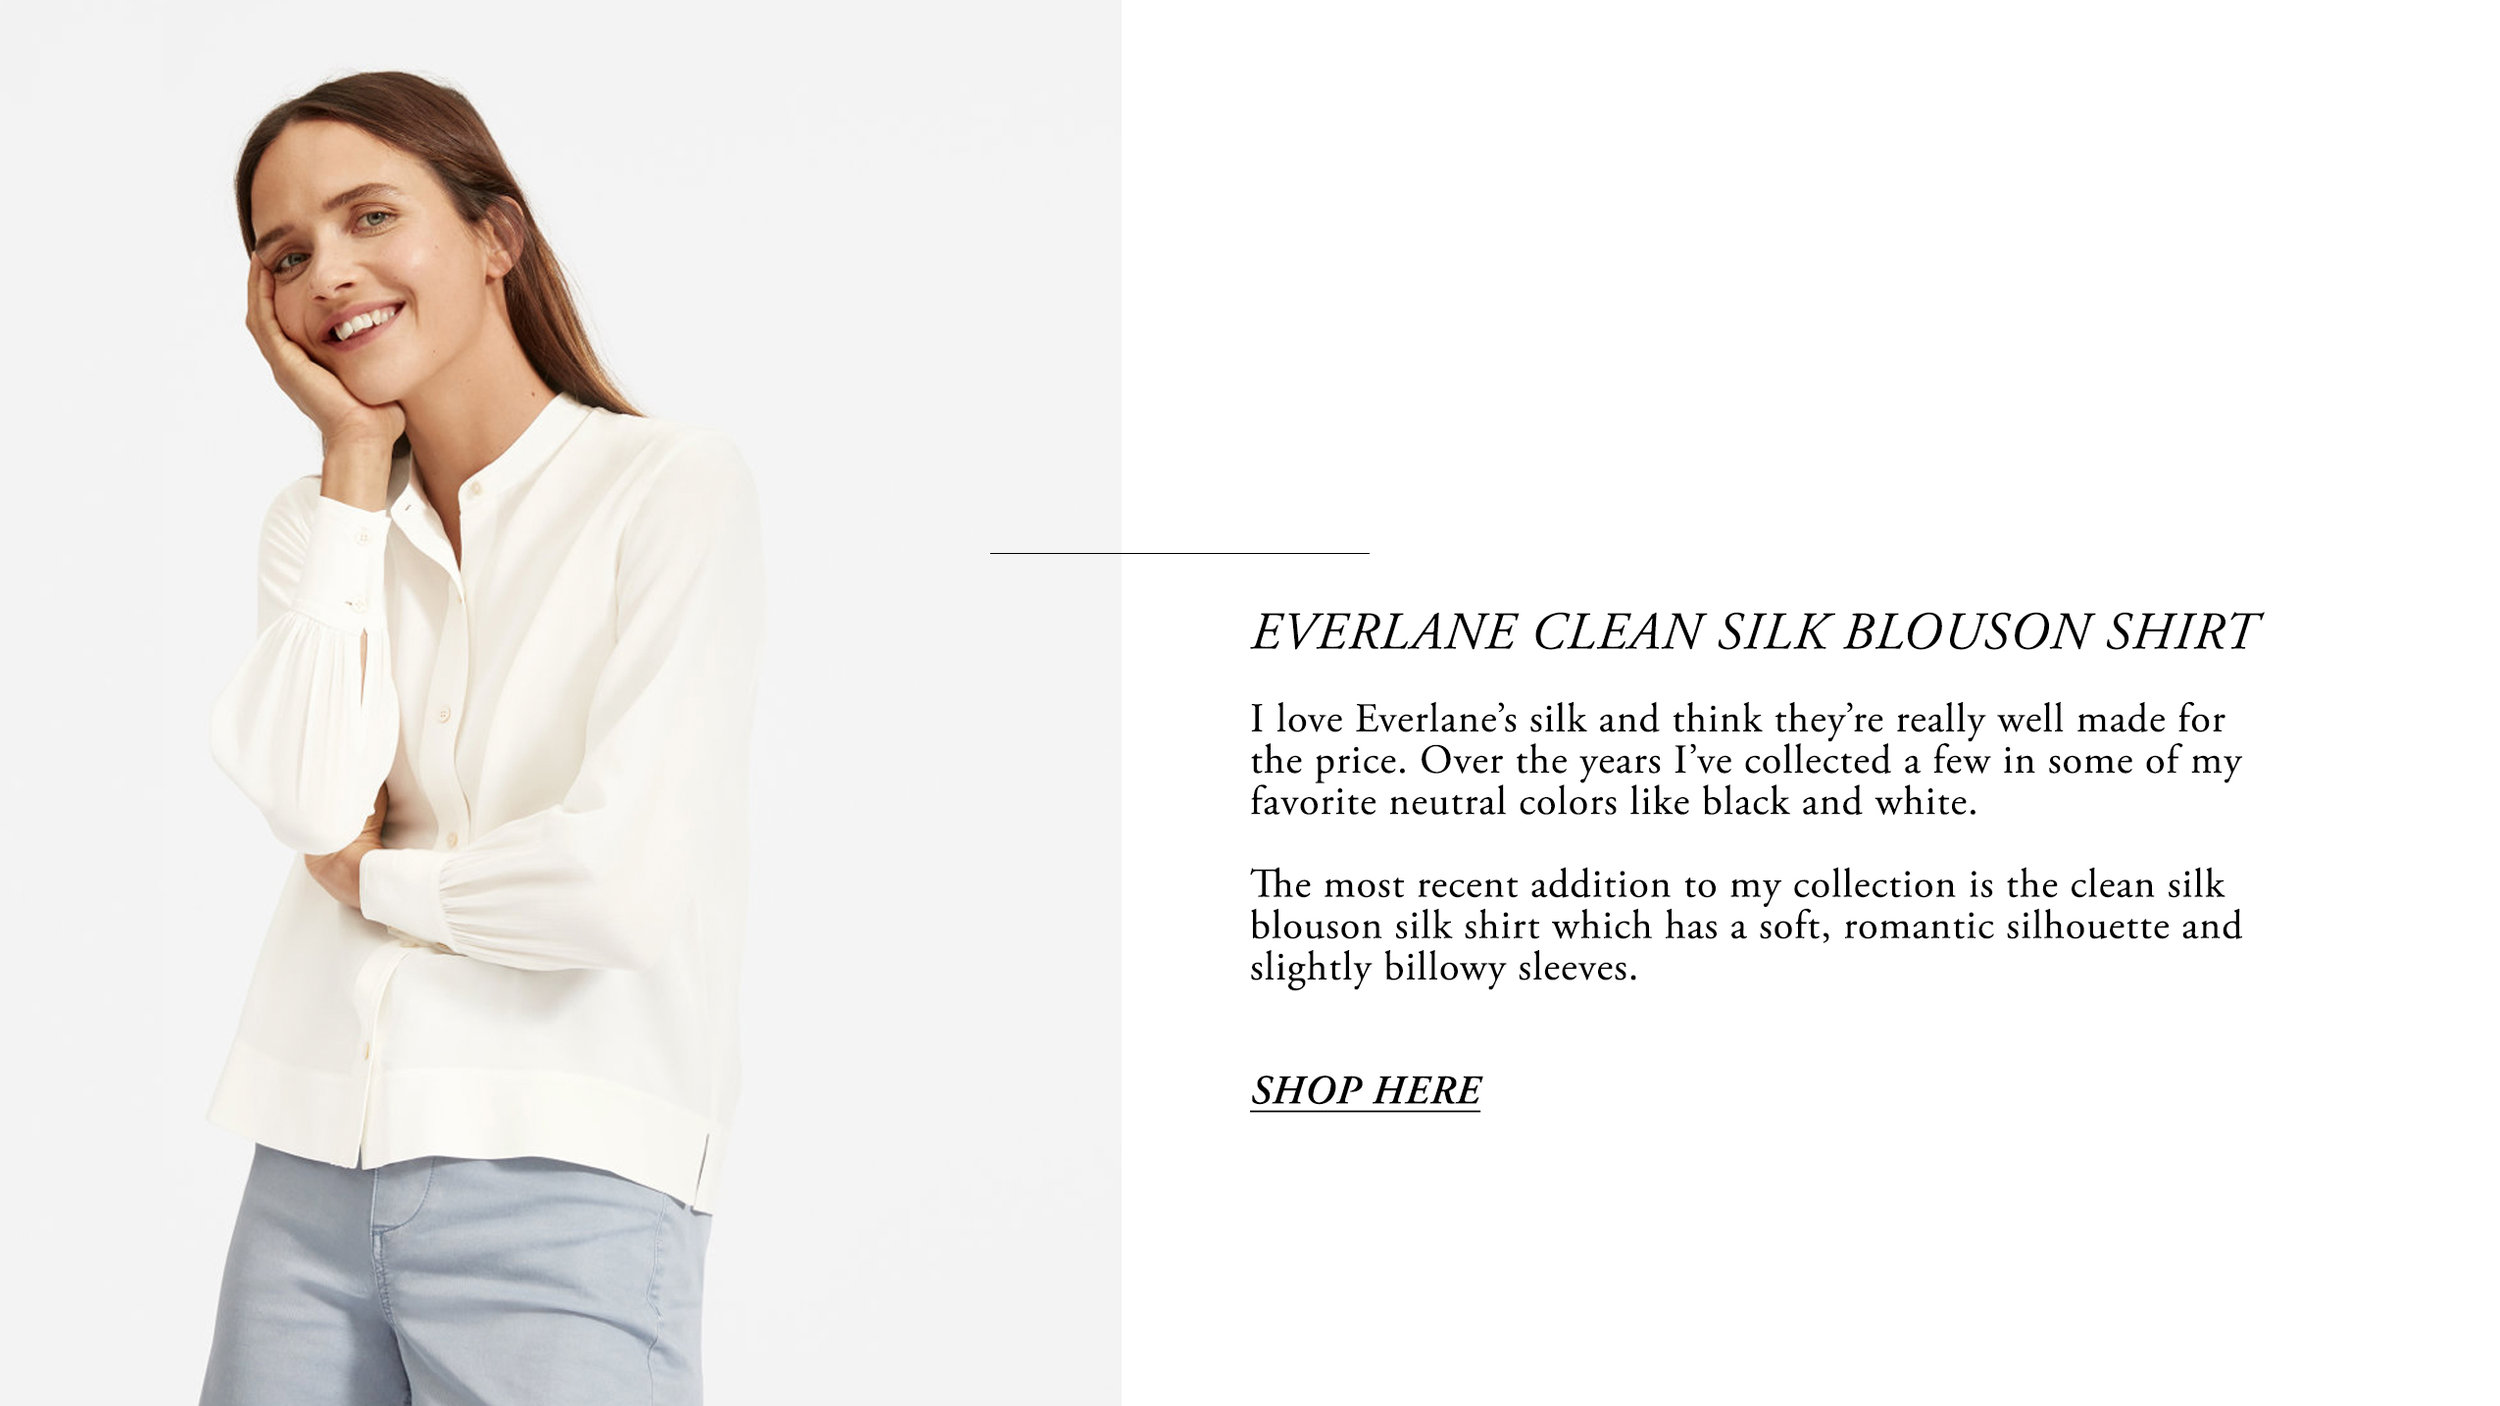 everlane-silk-shirt.jpg